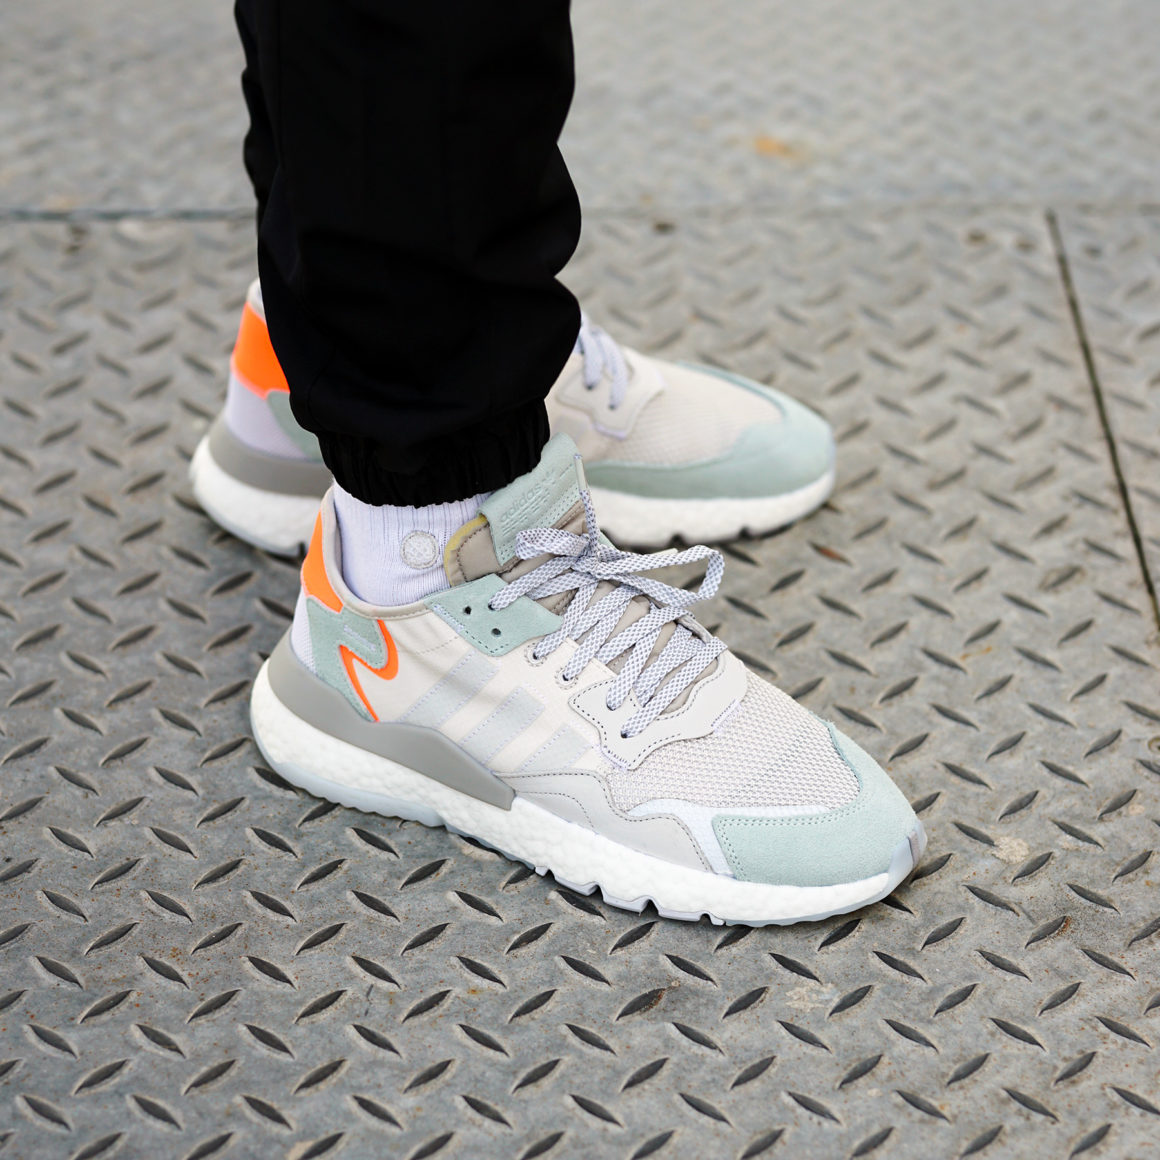 adidas Nite Jogger Boost Raw White/Grey One